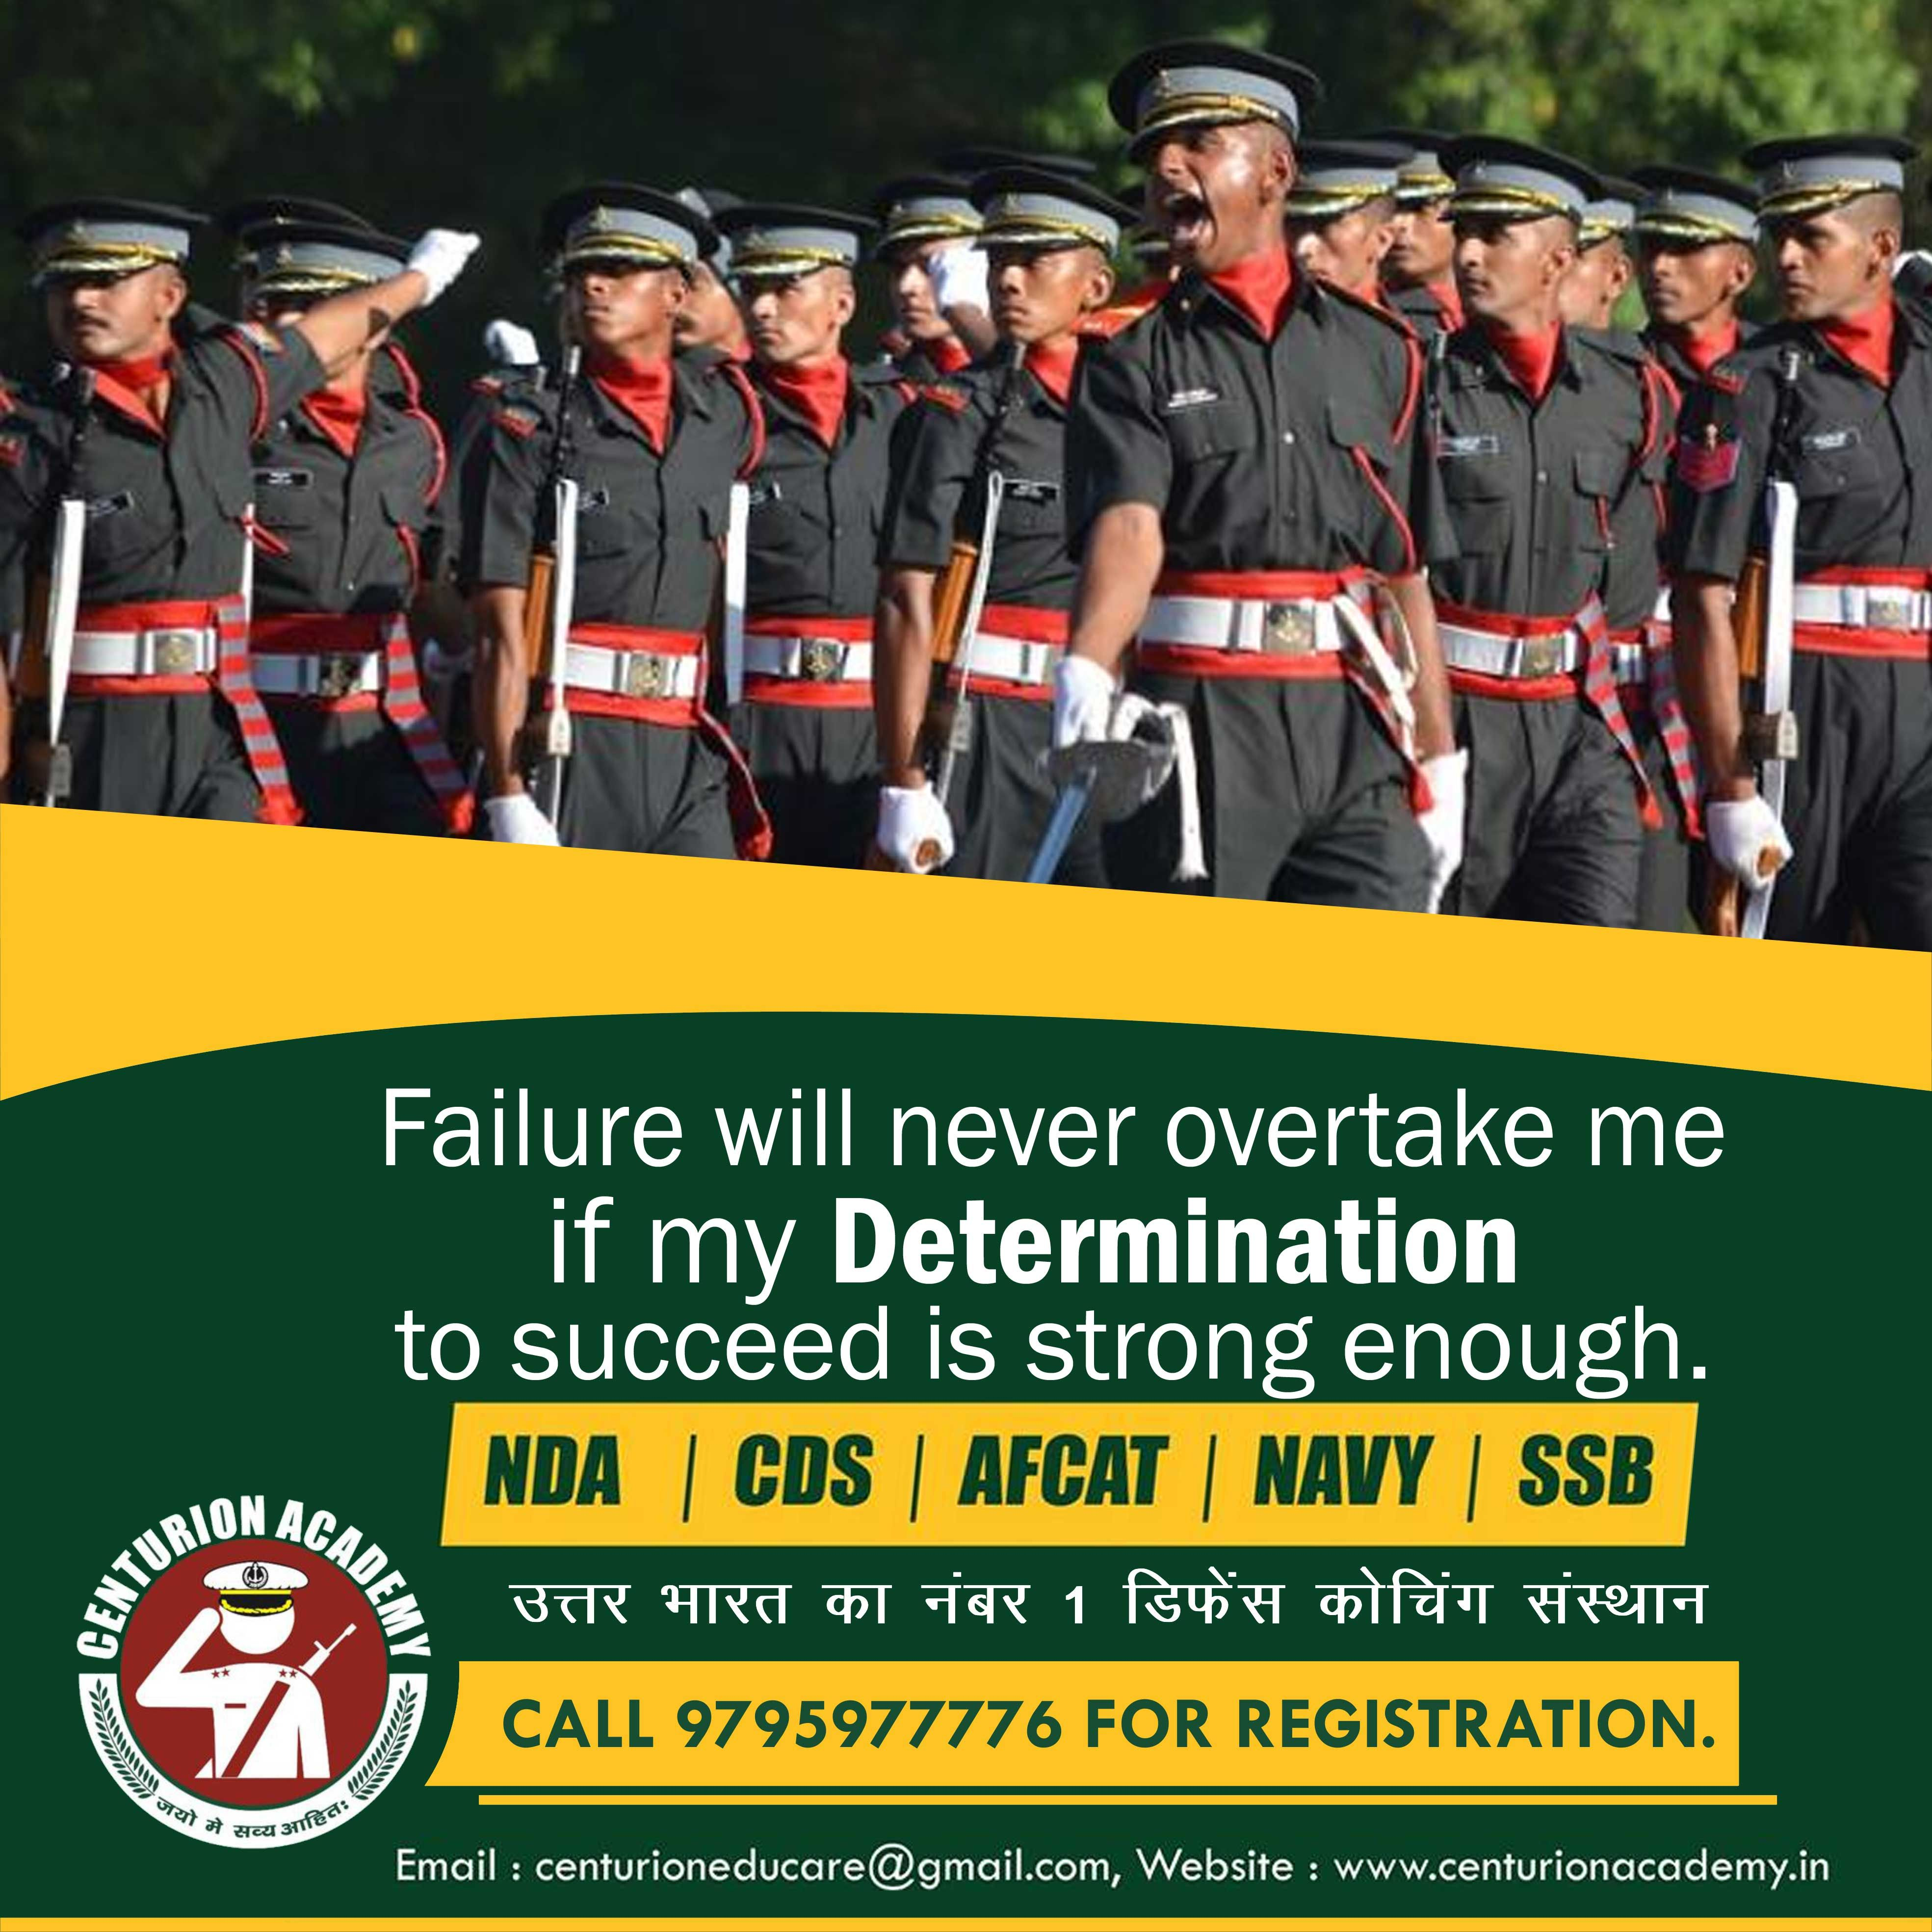 Failure will never overtake me, if my Determination to